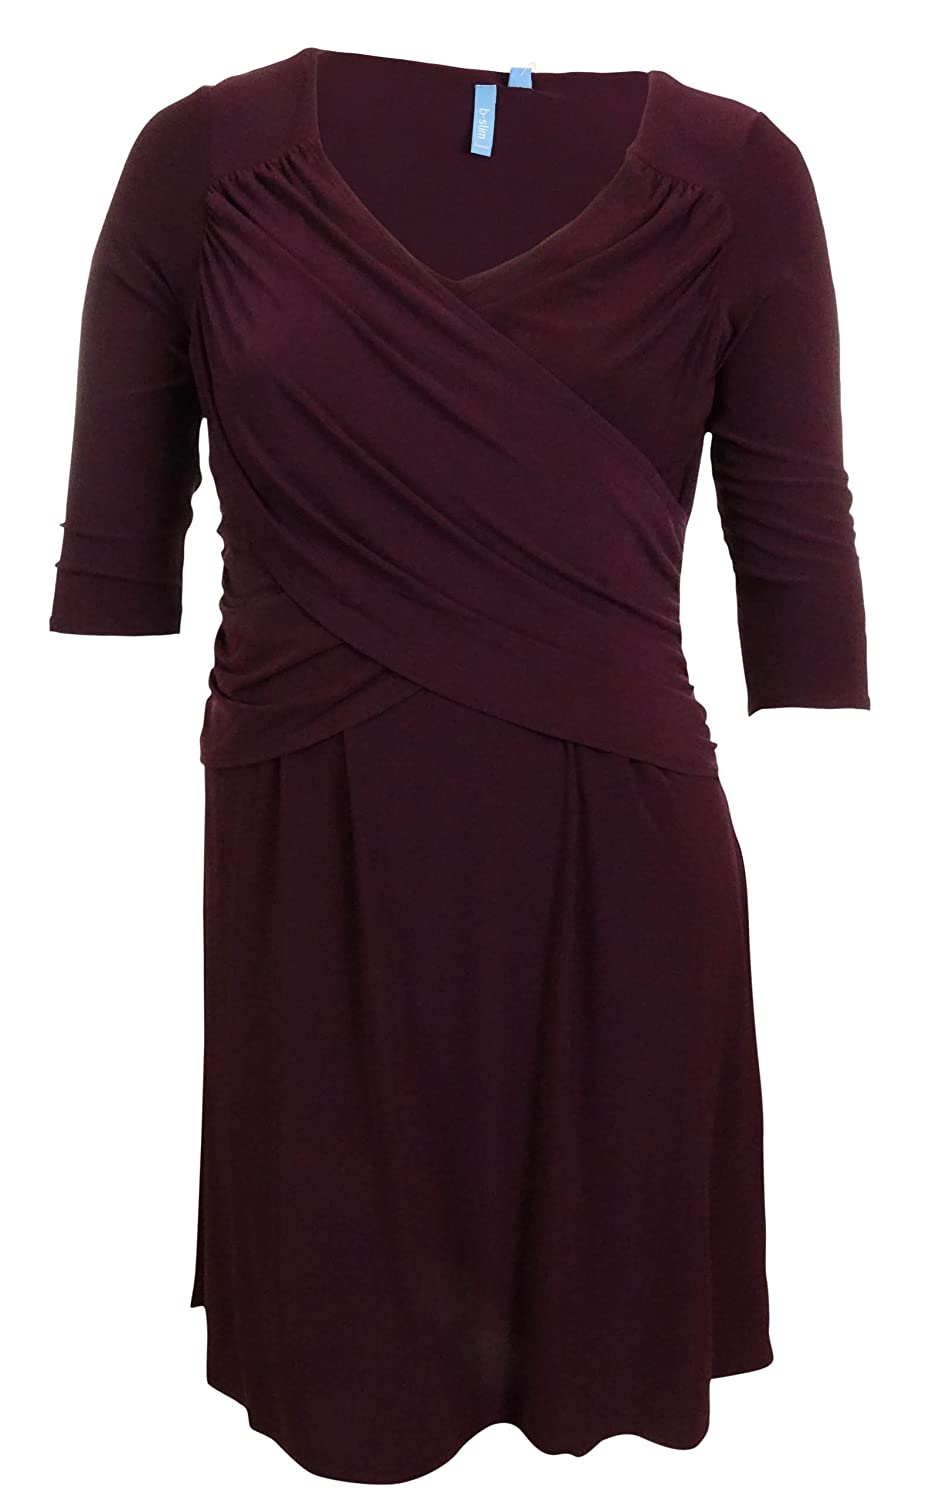 B-Slim Women's 3/4 Sleeve Solid Crossover Jersey Dress